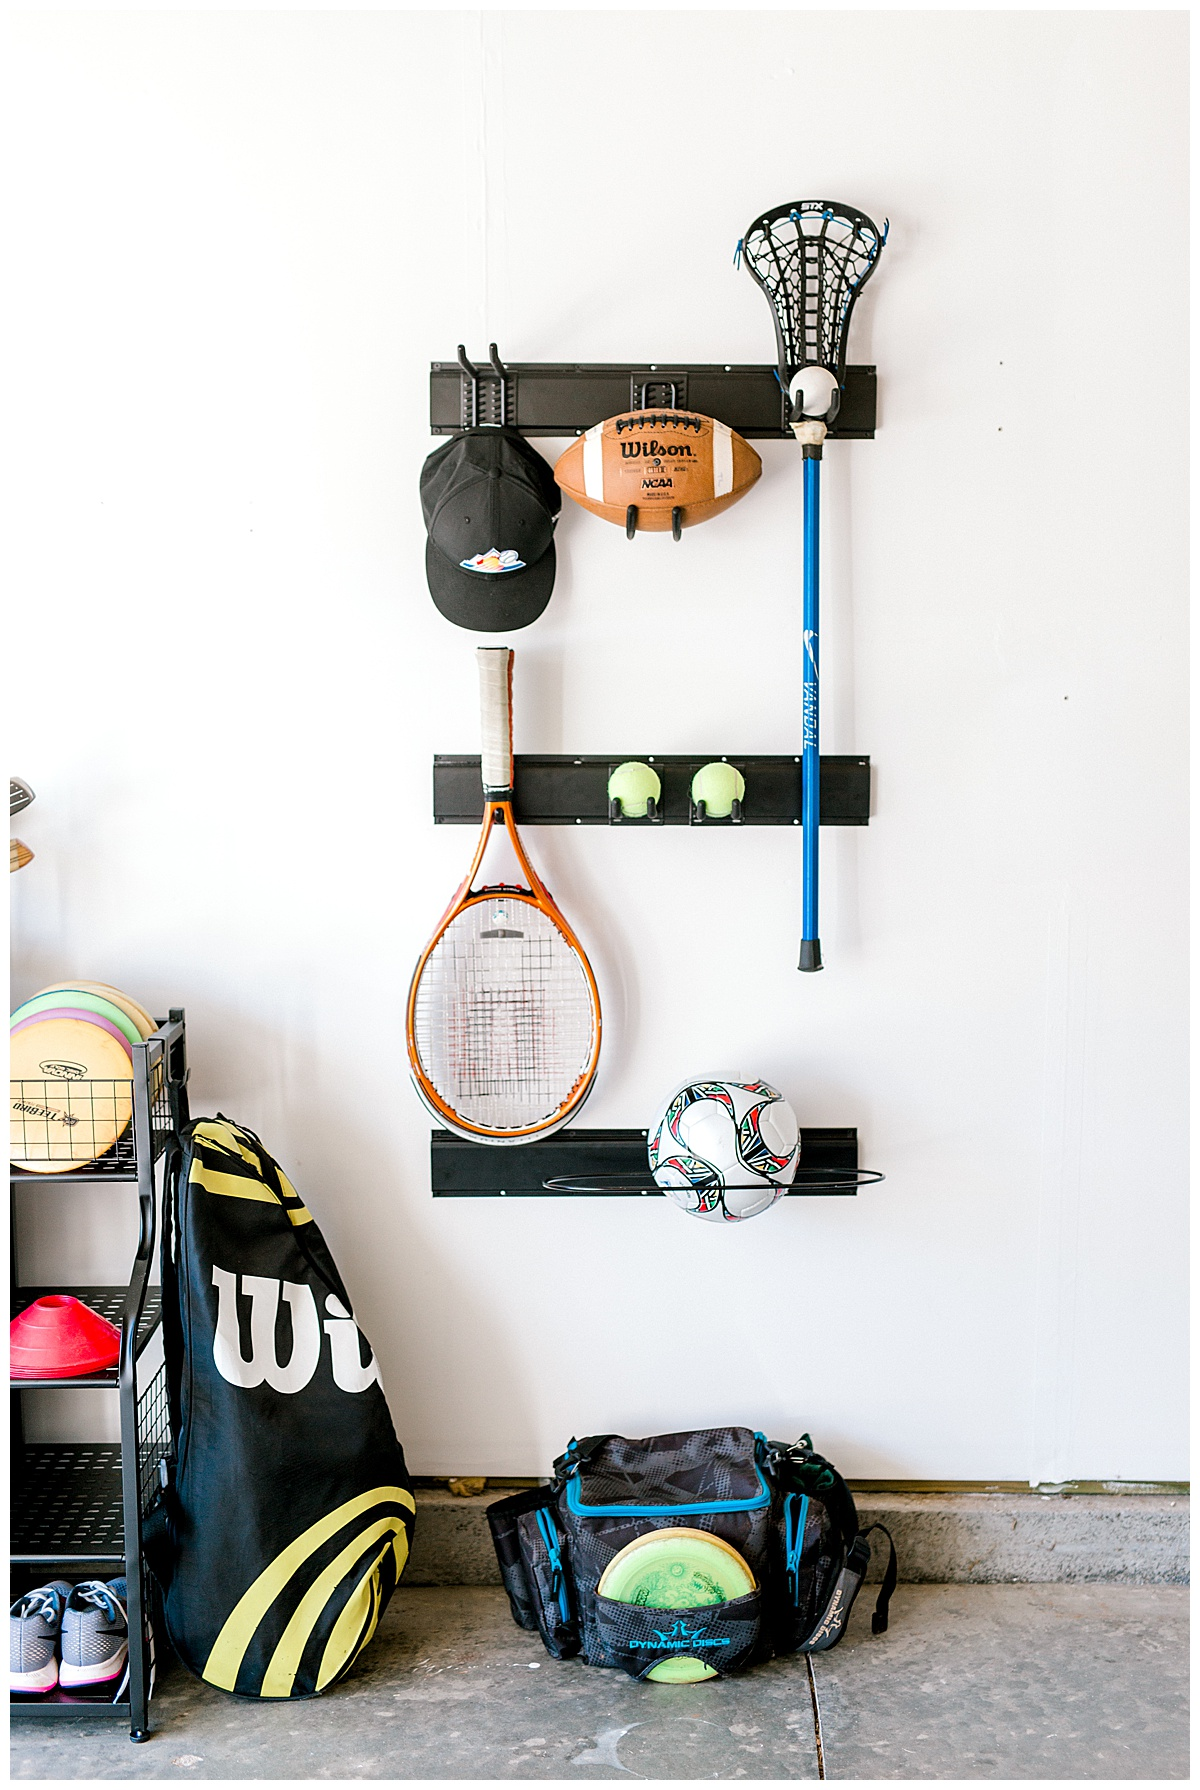 Wall storage system in a garage for sporting equipment.